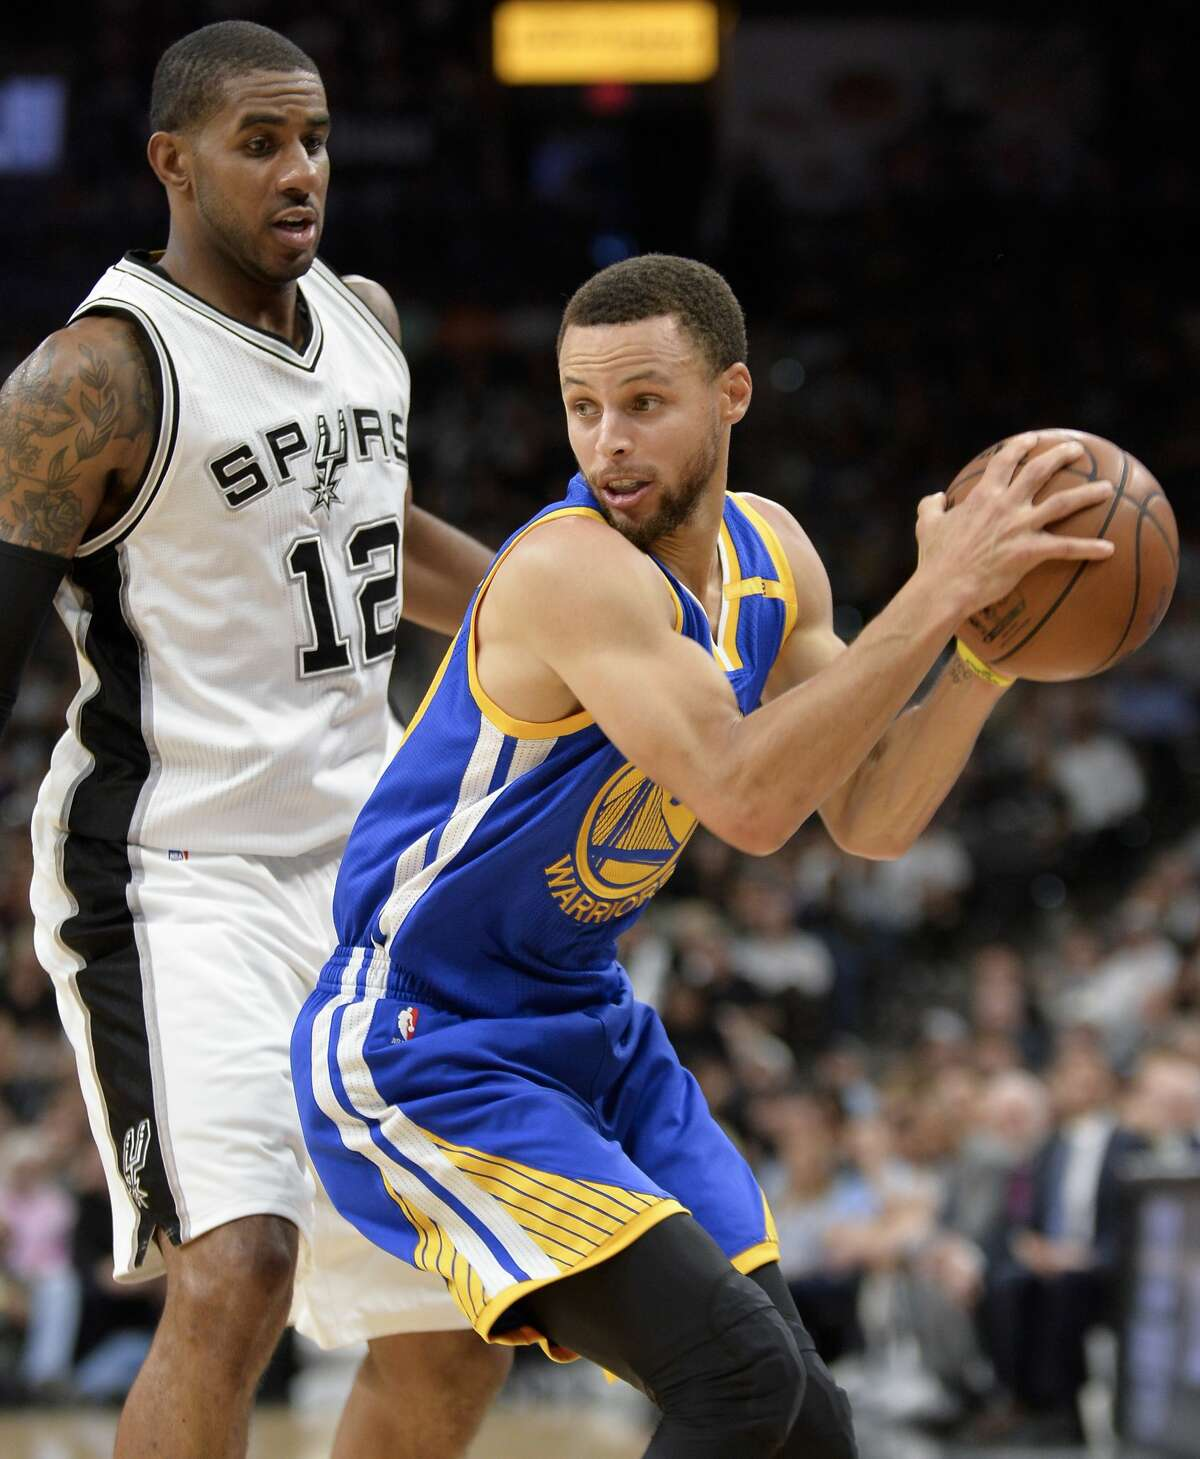 Golden State Warriors guard Stephen Curry, right, drives against San Antonio Spurs forward LaMarcus Aldridge during the first half of an NBA basketball game, Wednesday, March 29, 2017, in San Antonio. (AP Photo/Darren Abate)